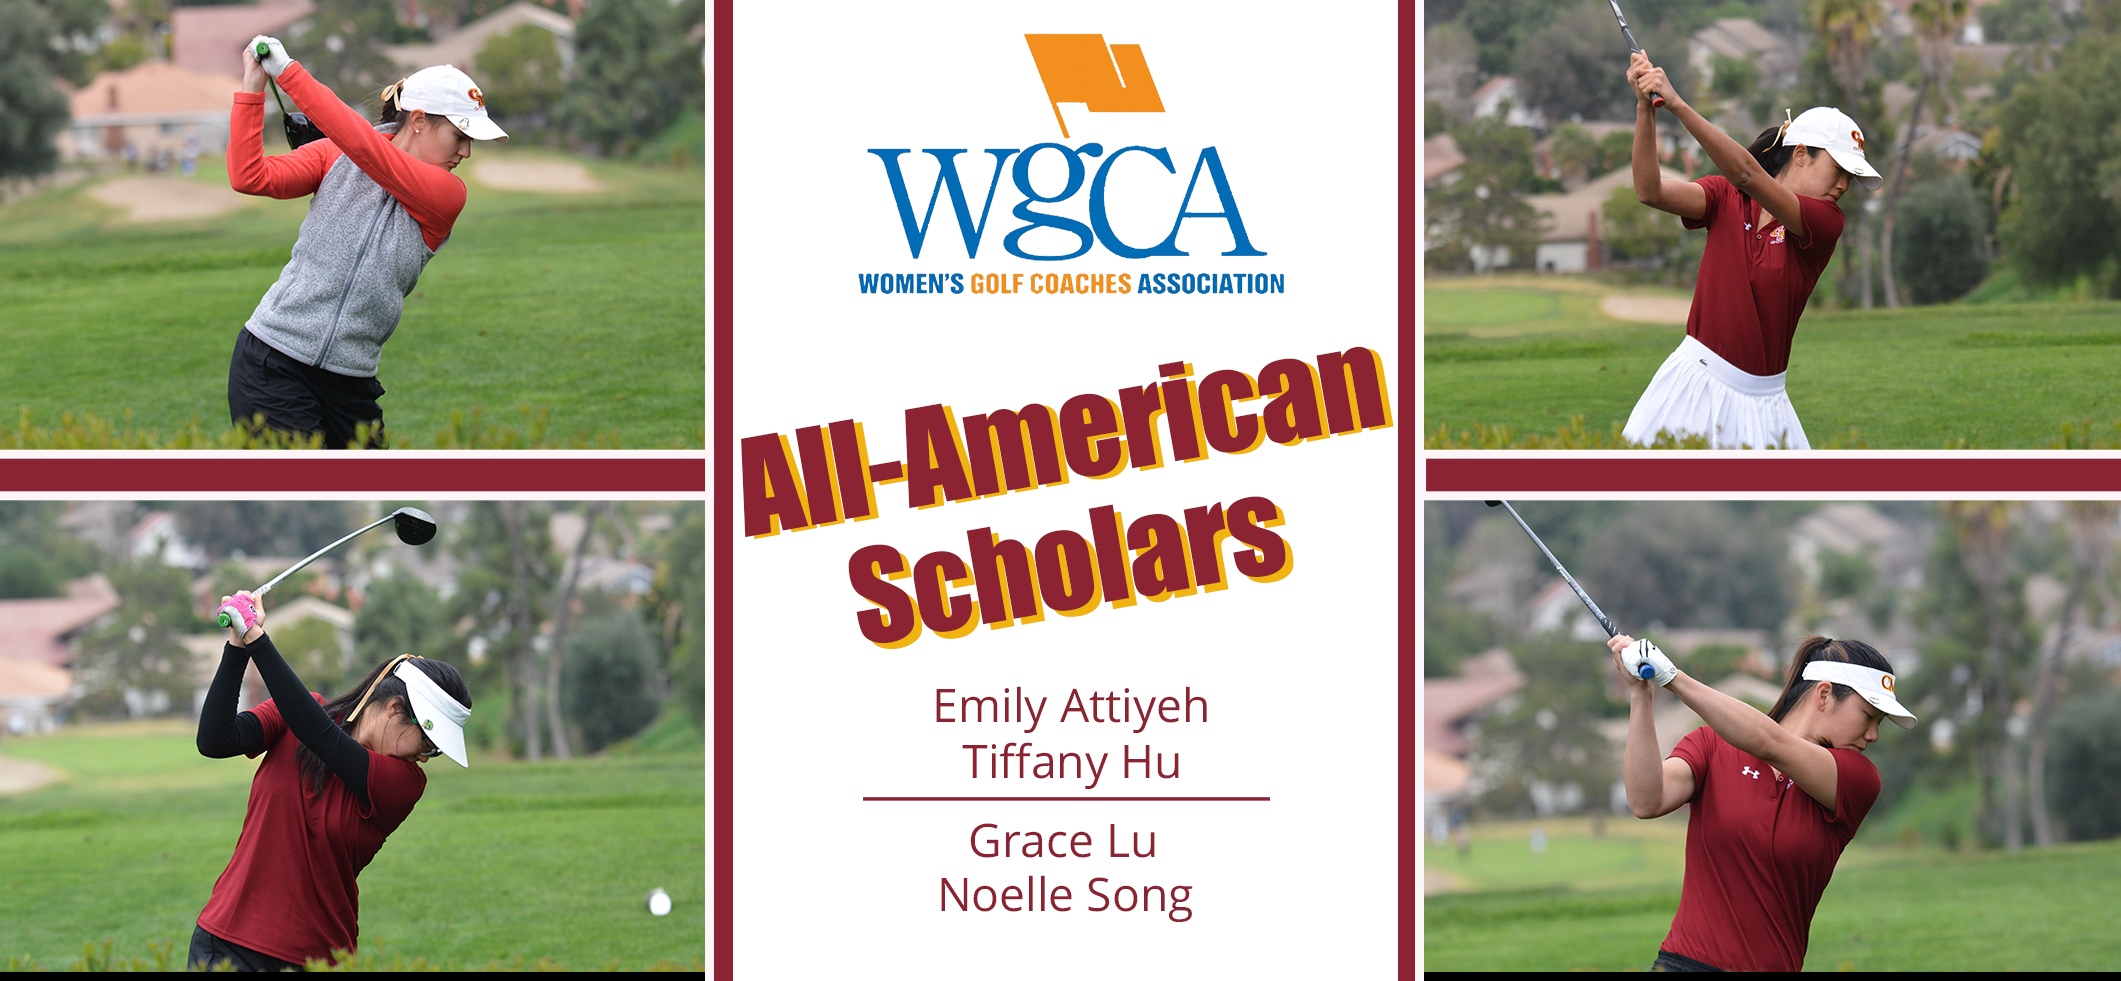 Four CMS Women's Golf Players Earn WGCA All-American Scholar Honors